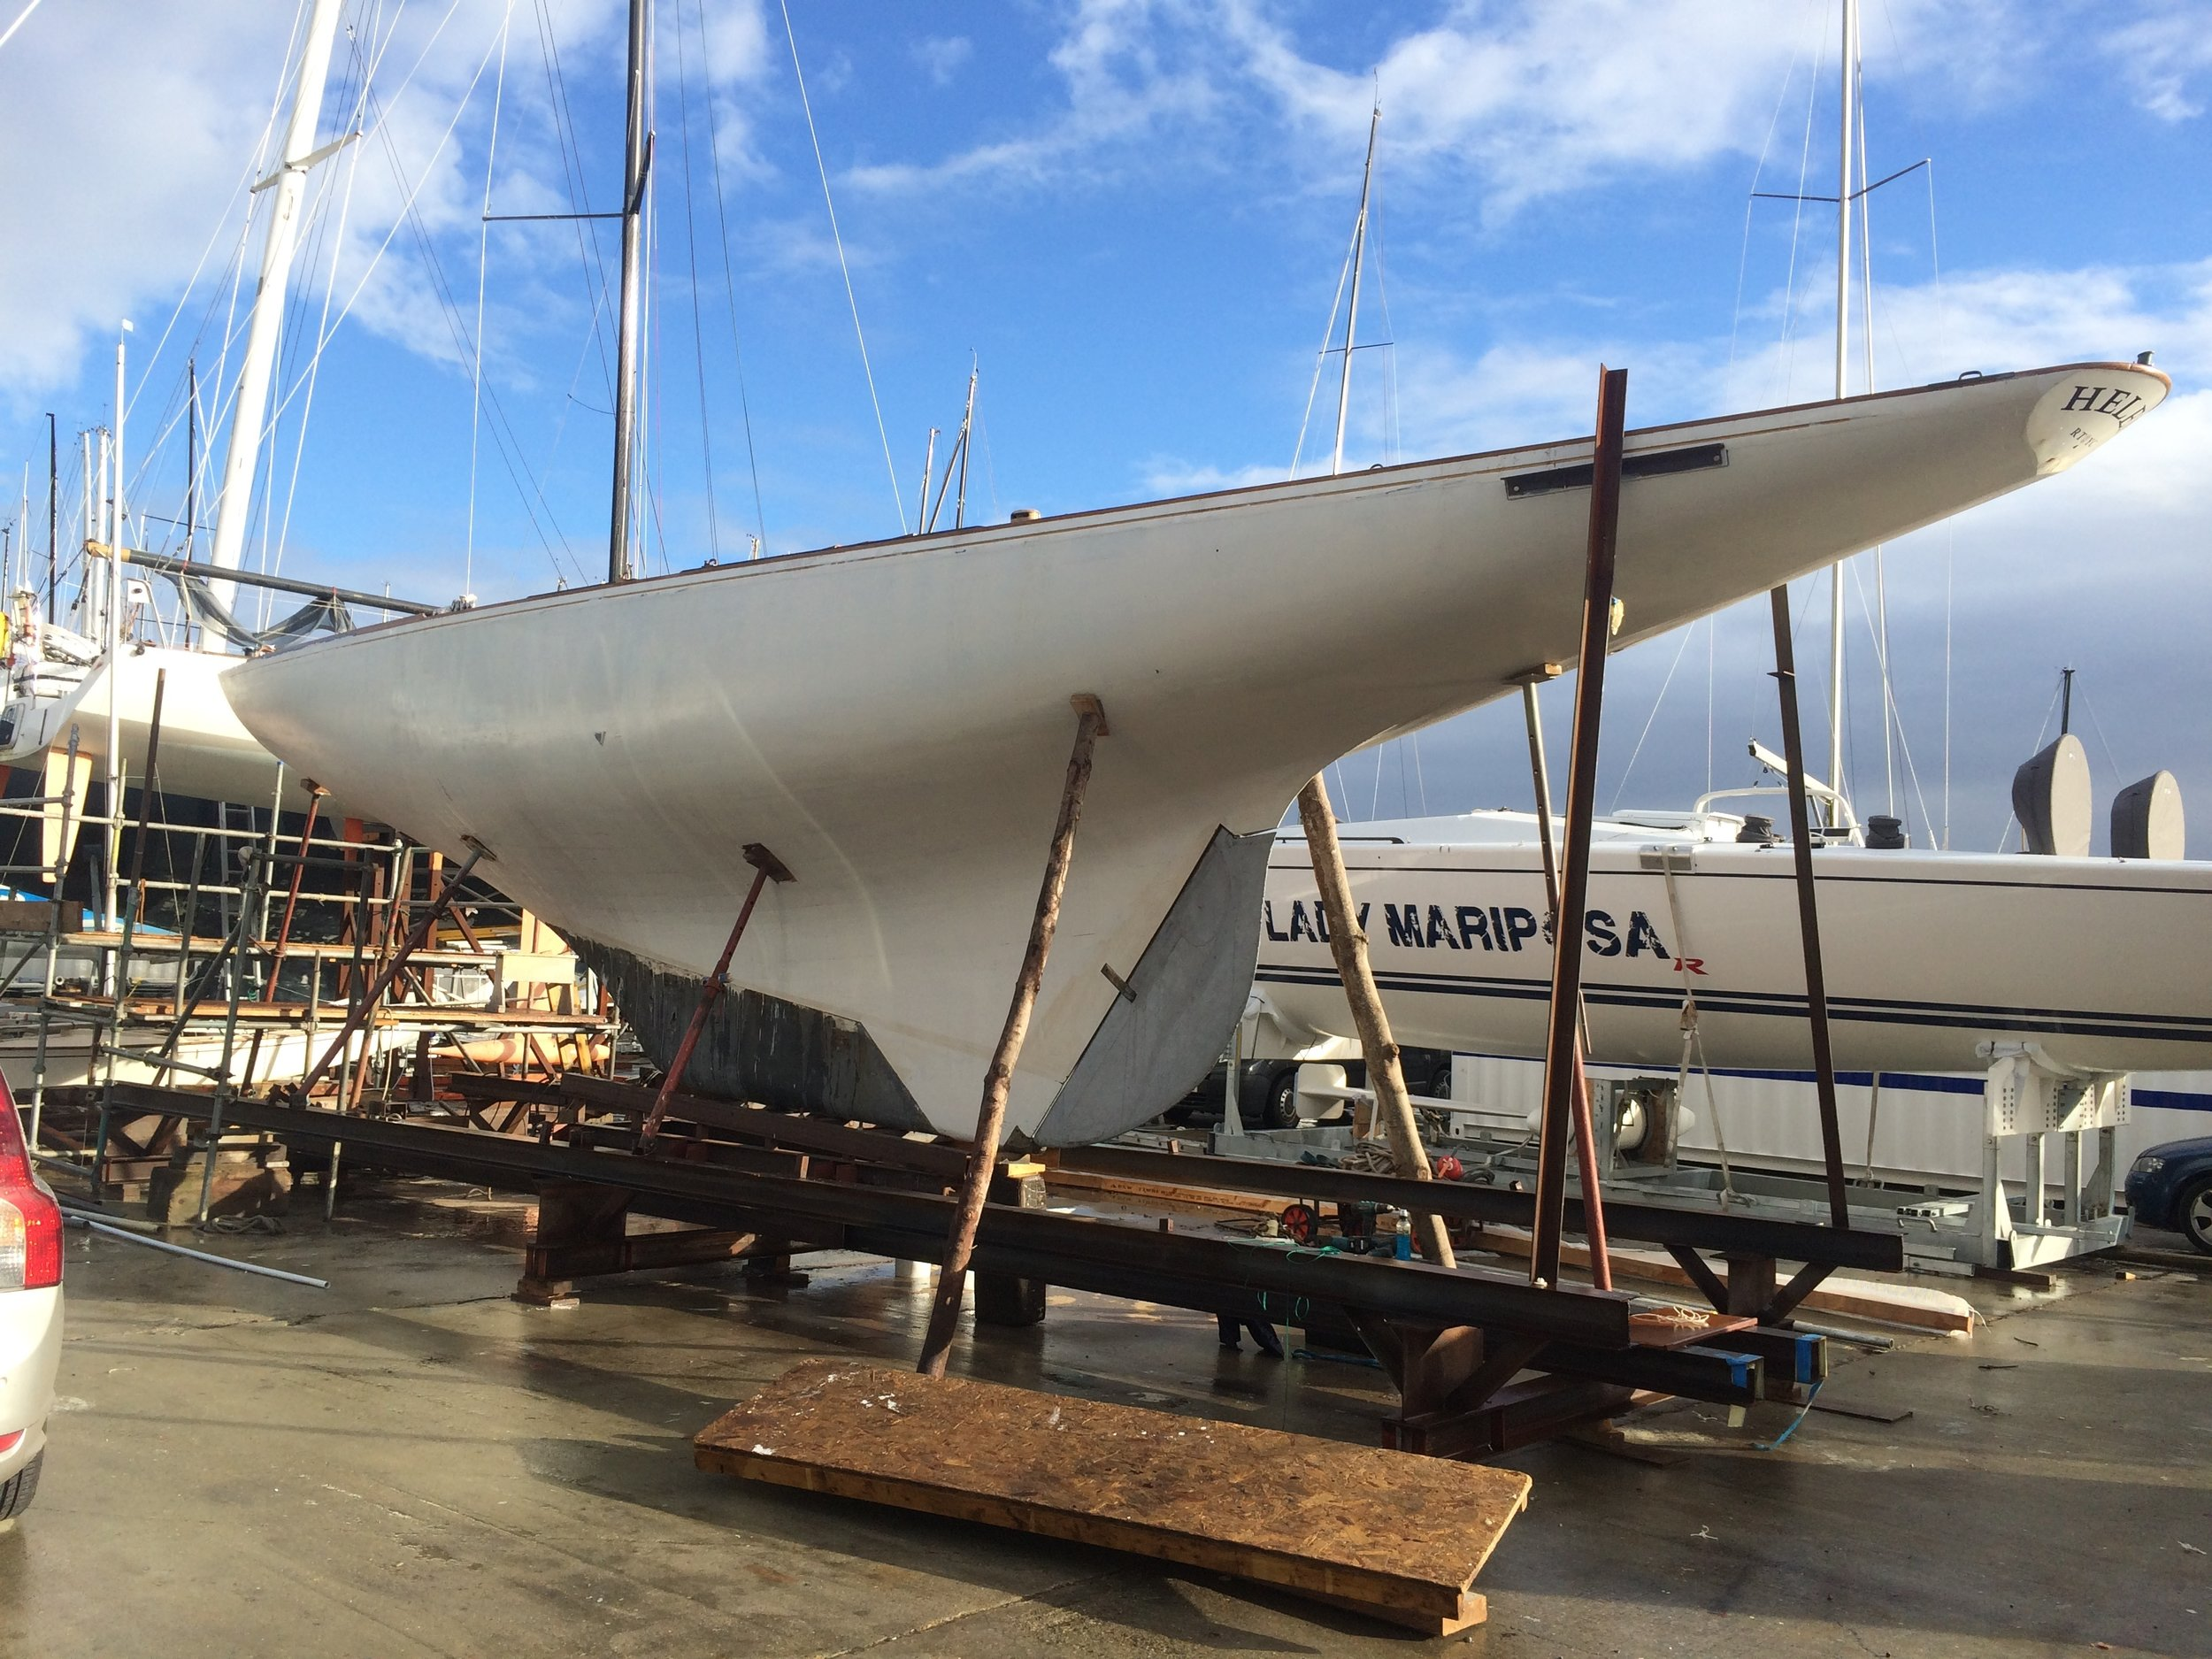 The Mylne 8Metre Helen comes out of the paint shop